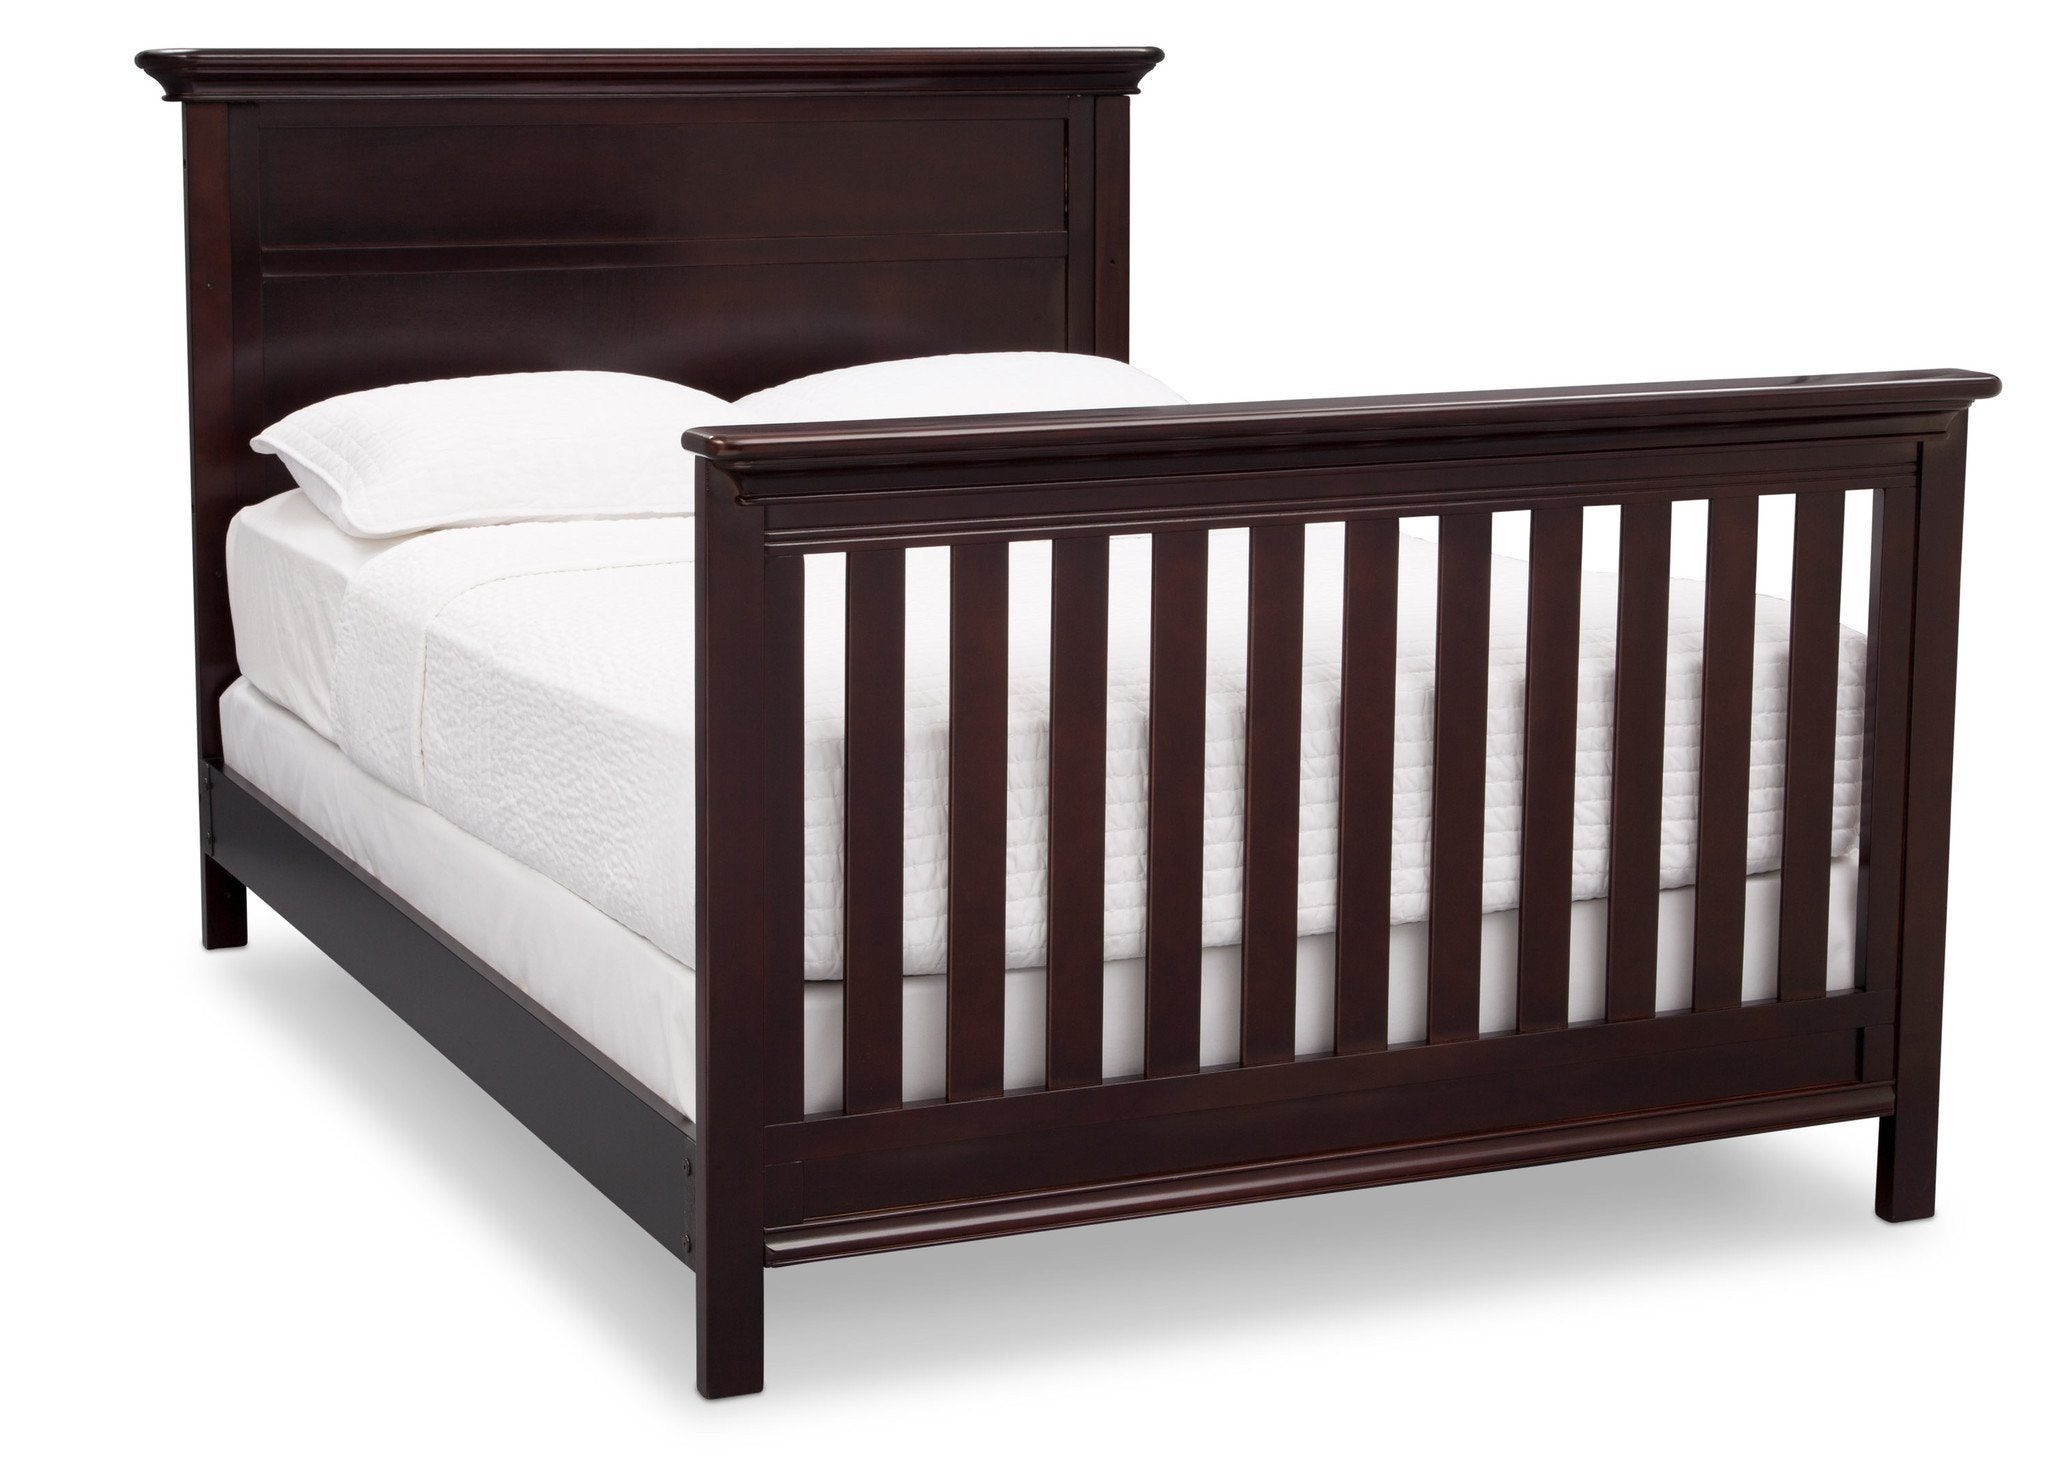 Serta Dark Chocolate (207) Fairmount 4-in-1 Crib, Side View with Full Size Platform Bed Kit (for 4-in-1 Cribs) 700850 c7c